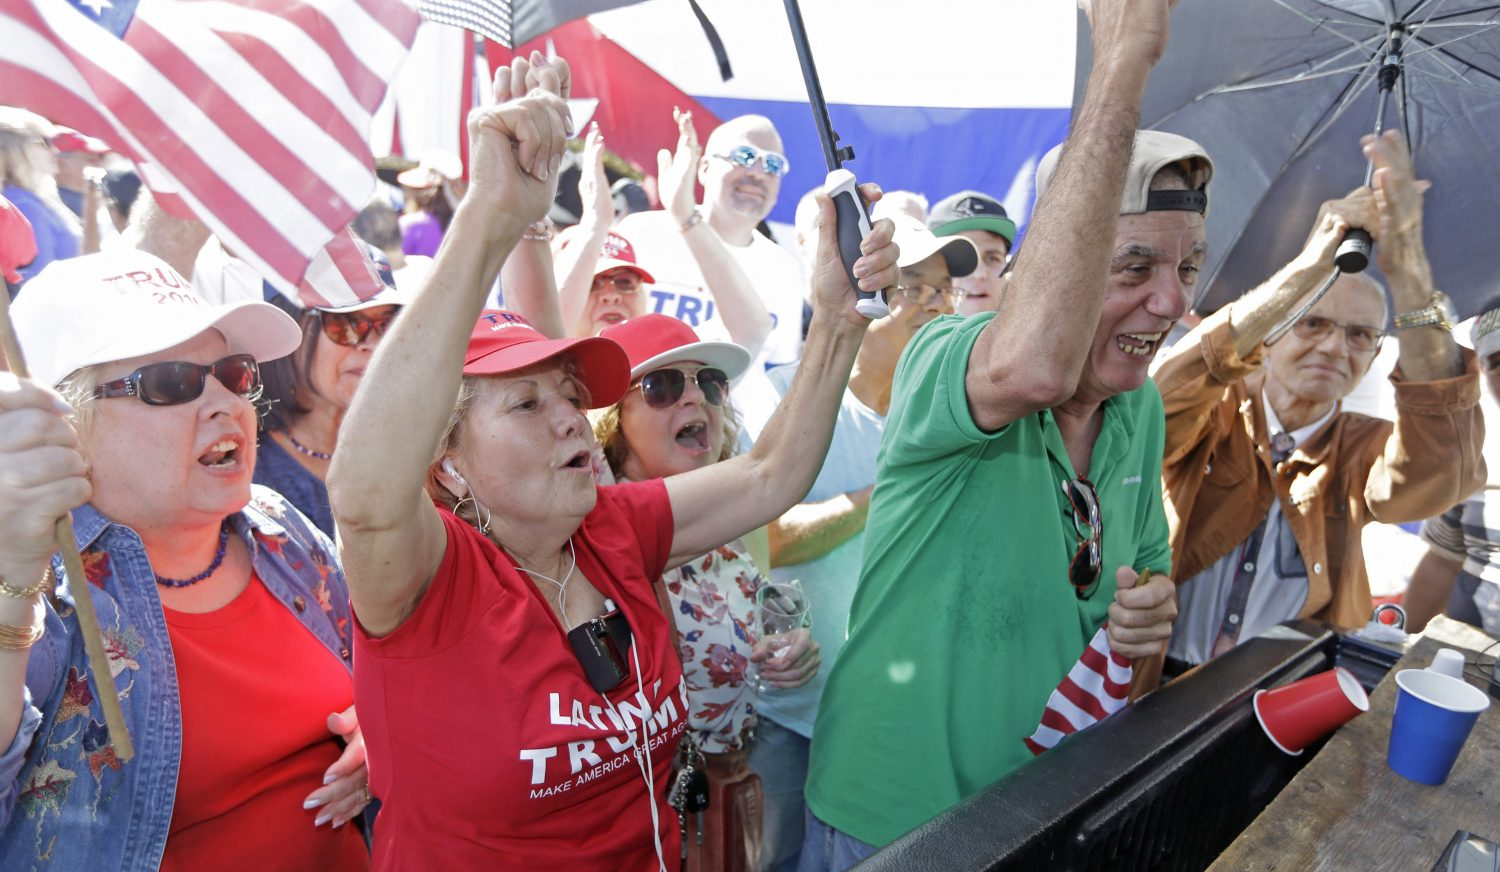 Cuban-American supporters celebrate in the Little Havana area in Miami, as they watch a televised broadcast as President-elect Donald Trump is sworn in as the 45th president of the United States, Friday, Jan. 20, 2017. (AP Photo/Alan Diaz)